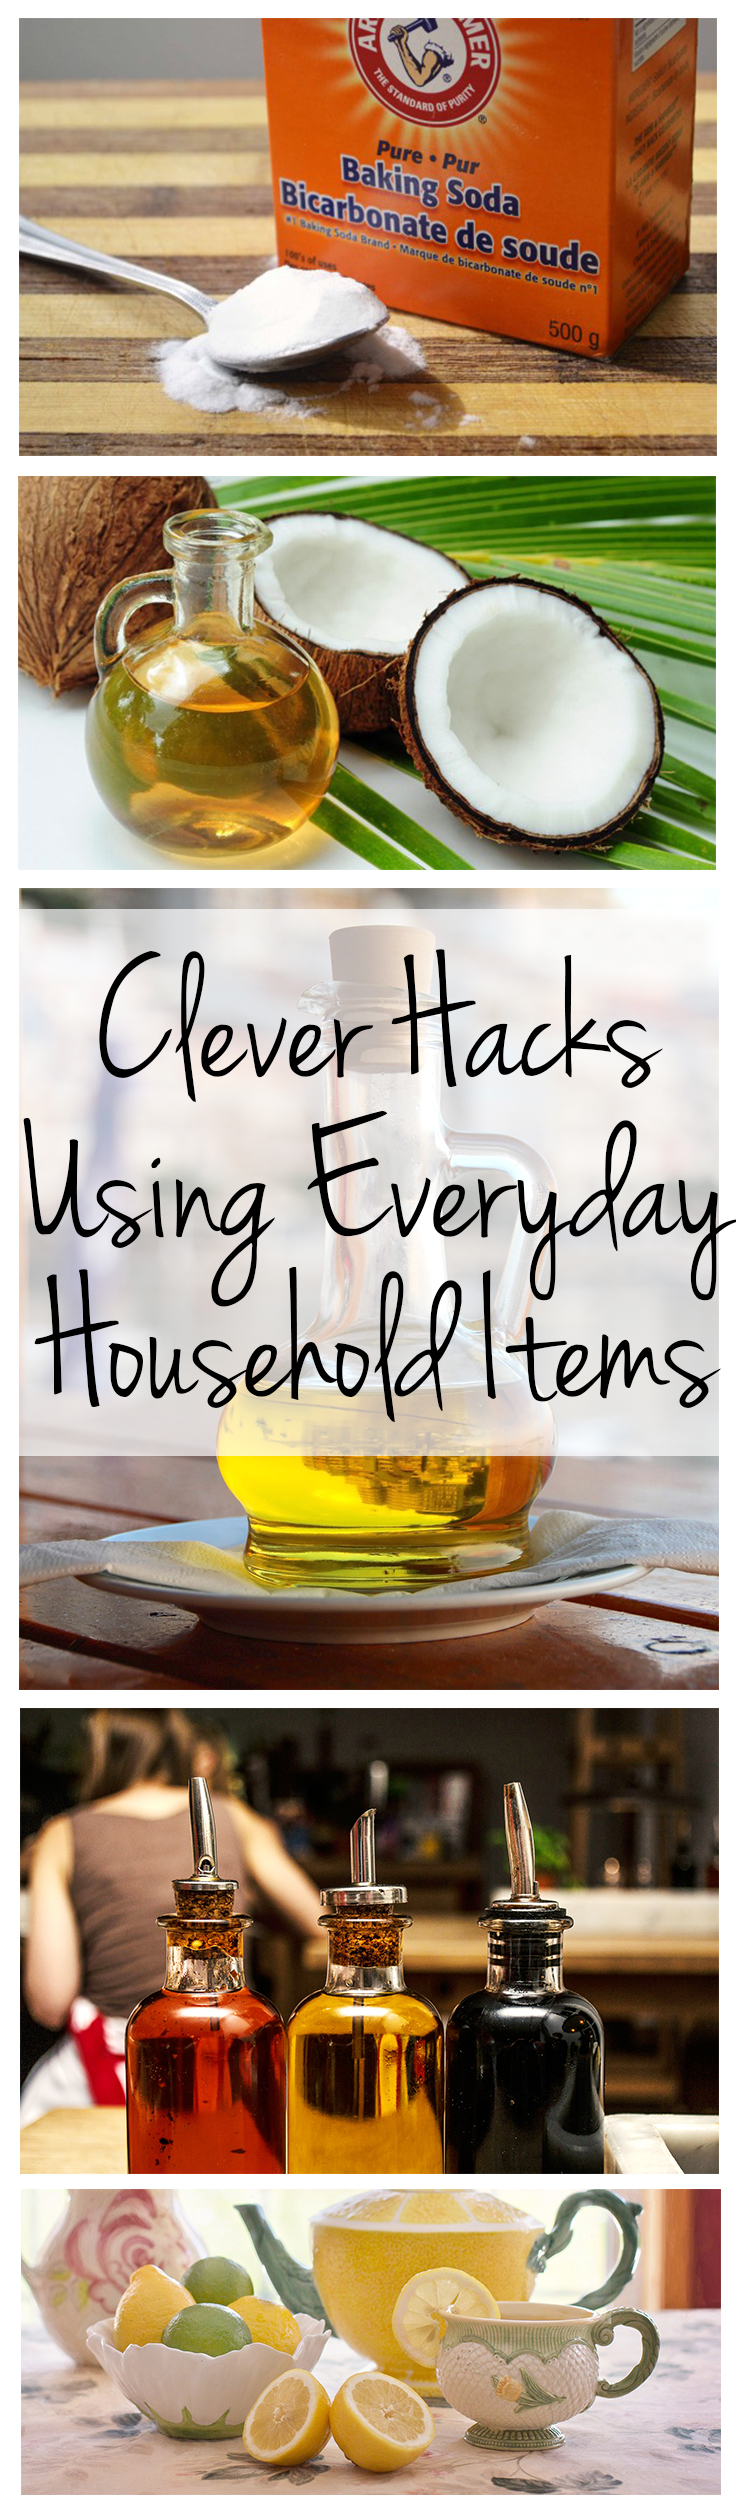 Clever hacks using everyday household items wrapped in rust for Household hacks